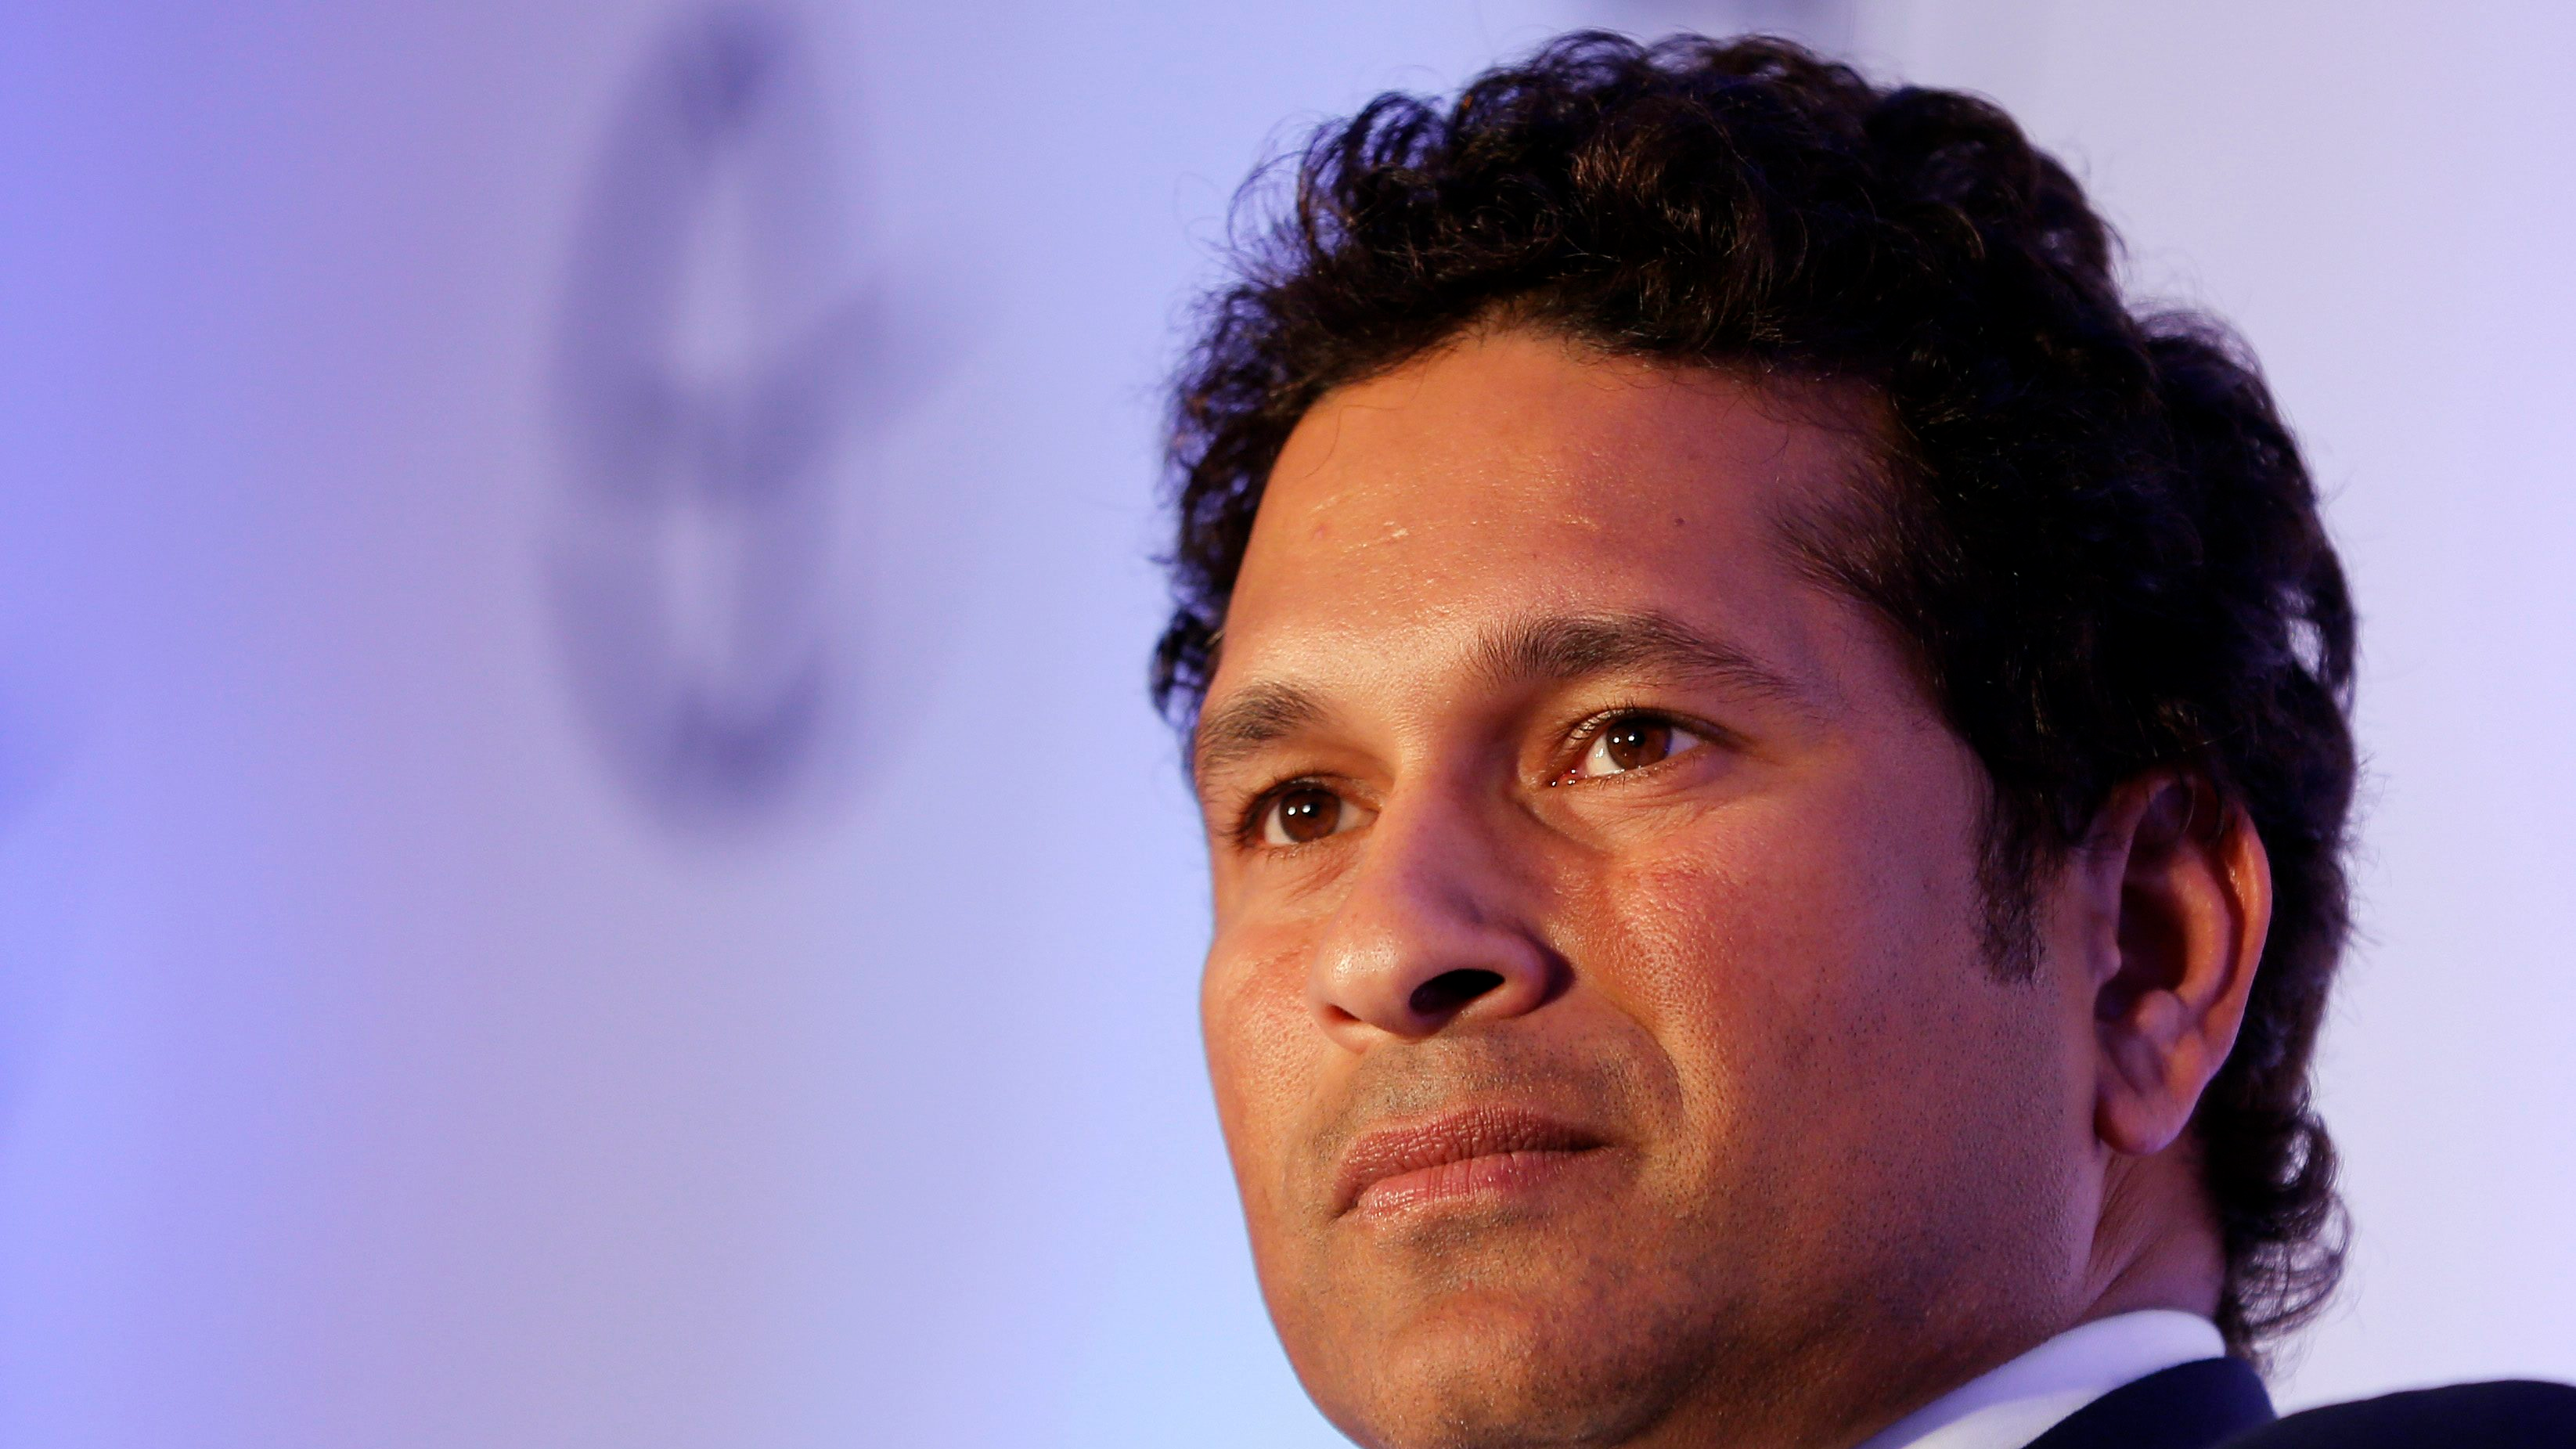 Sachin Tendulkar has some advice to make Test matches balanced for the bowlers